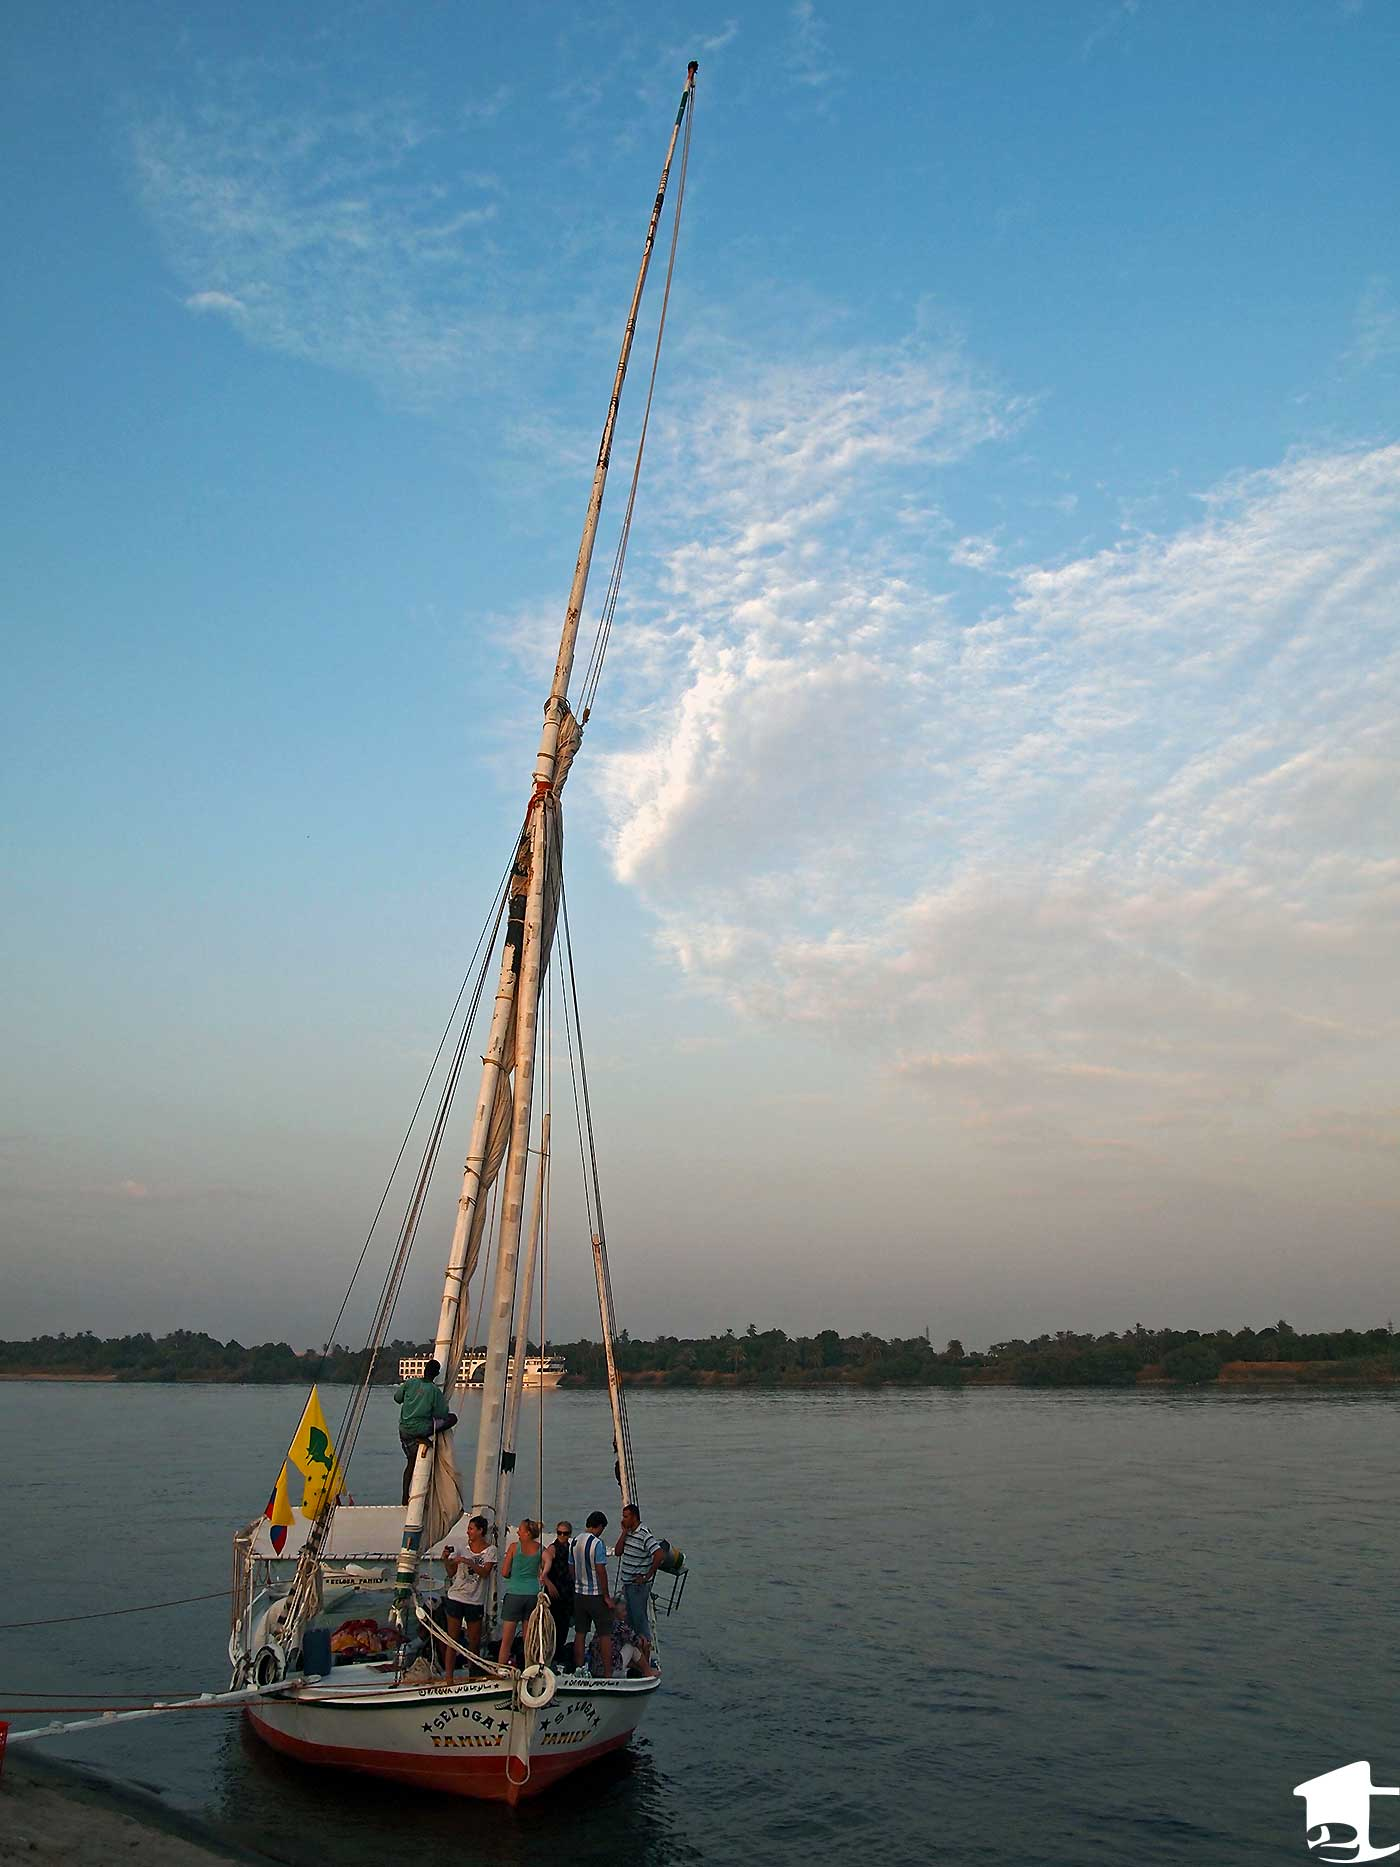 Our felucca docked